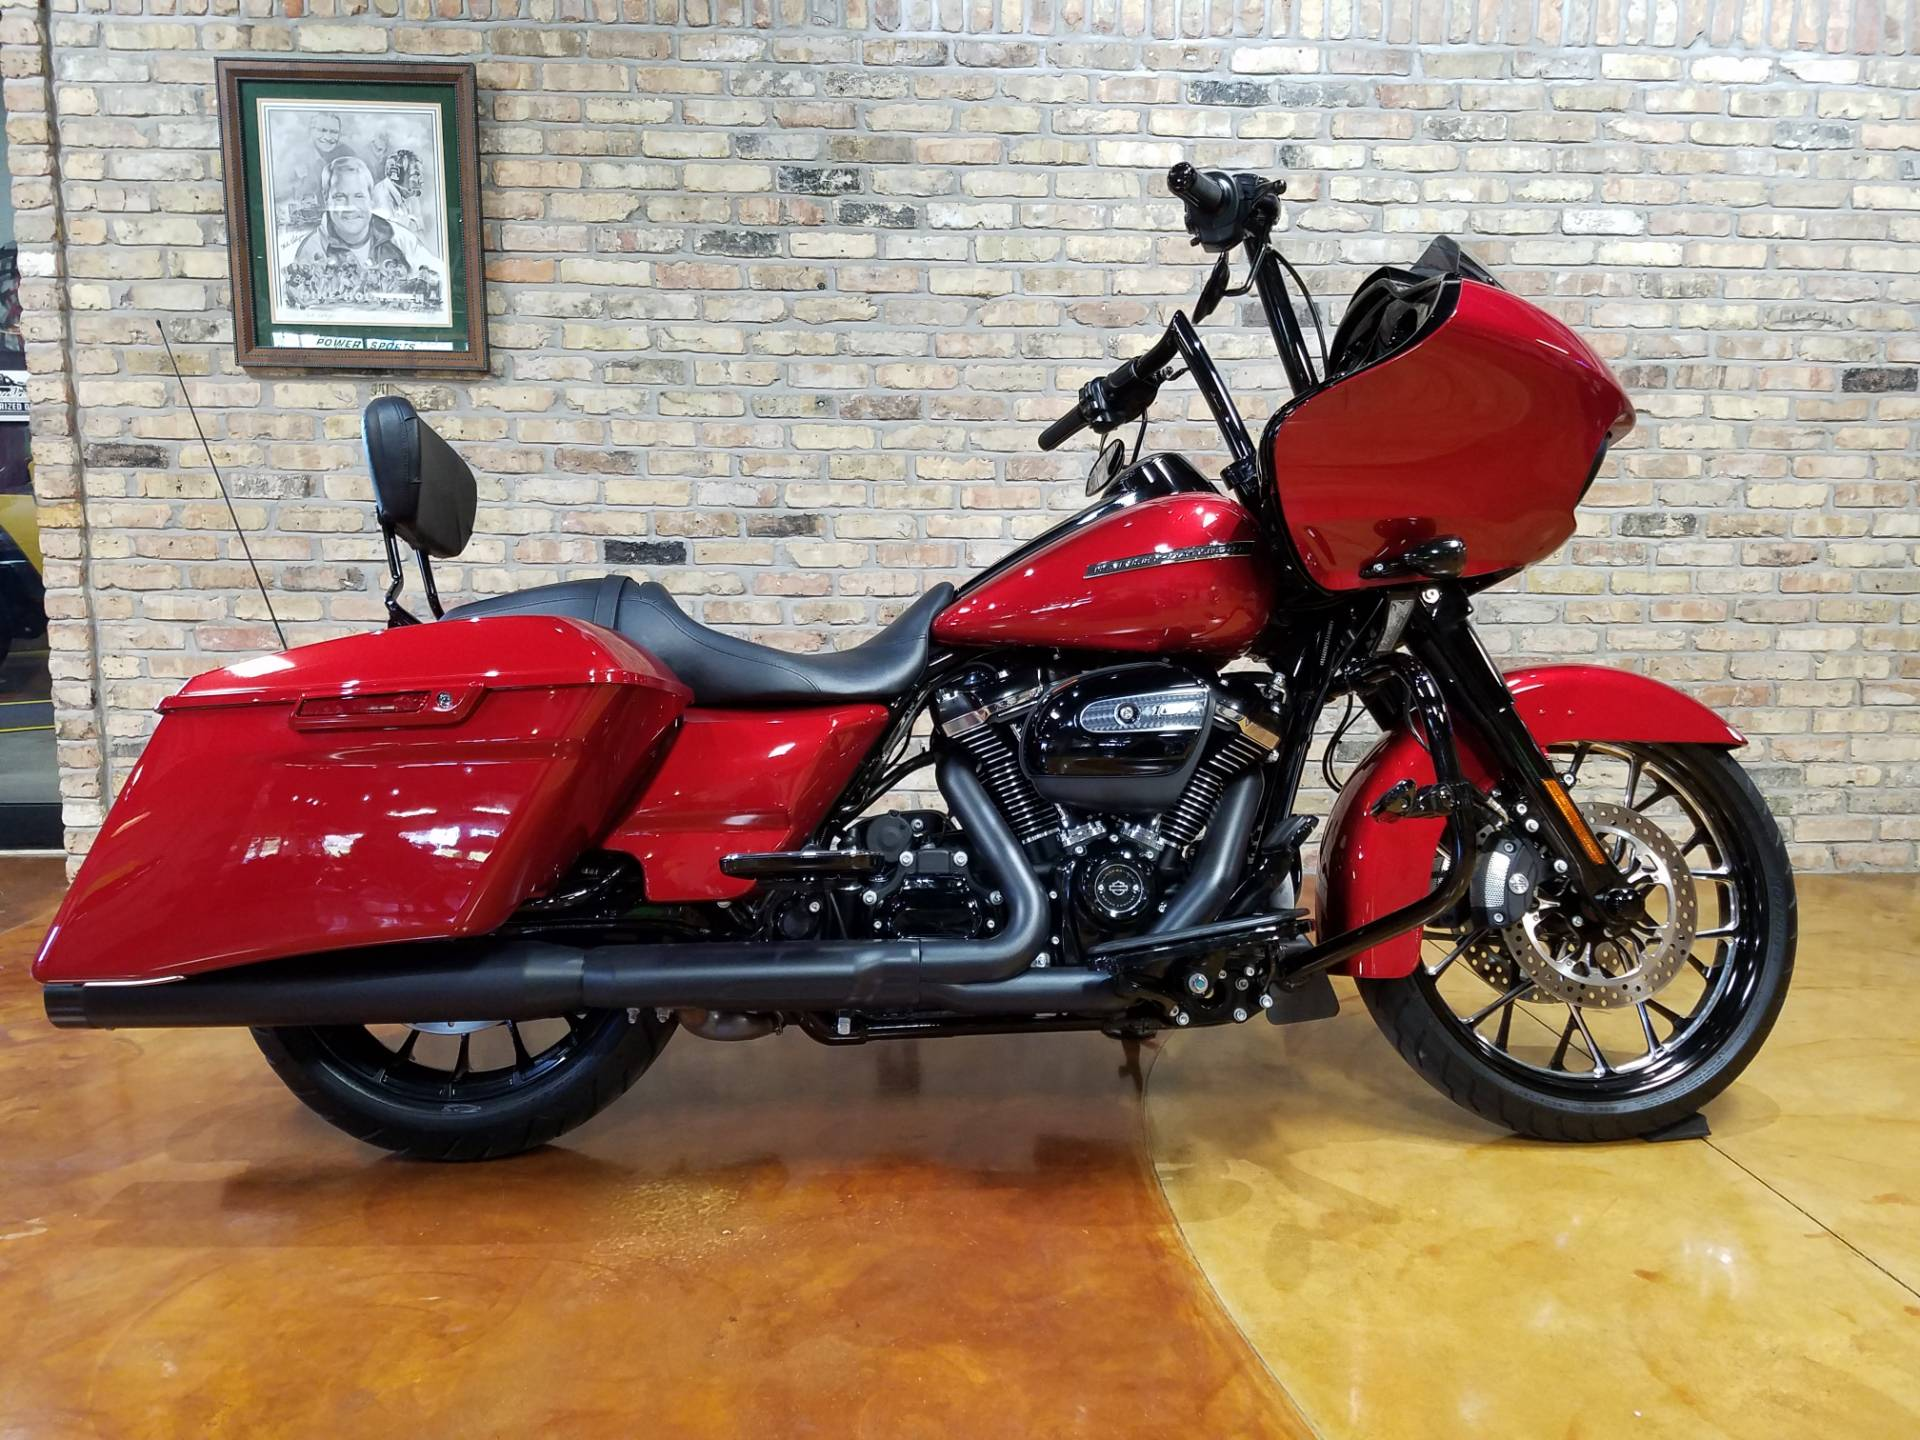 Used 2018 Harley Davidson Road Glide Special Motorcycles In Big Bend Wi 4332 Wicked Red